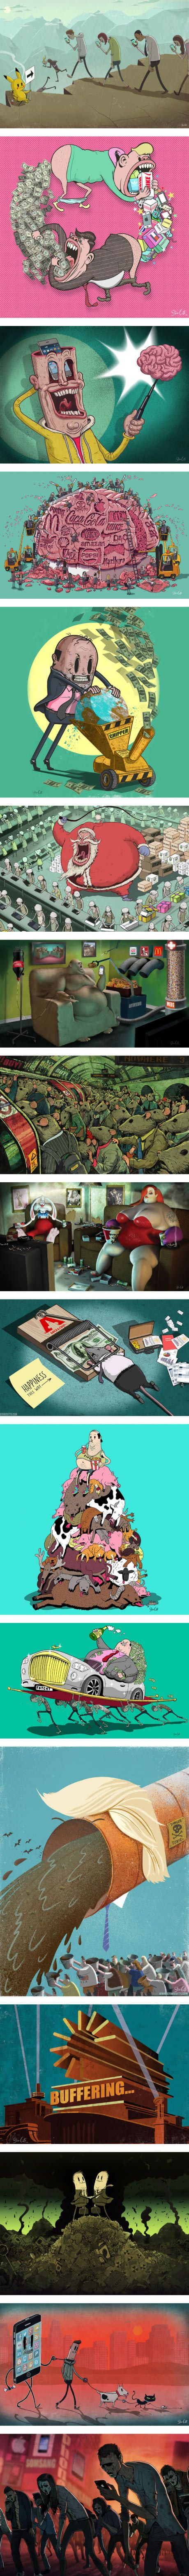 Best Imágenes Que Dan Para Pensar Images On Pinterest - 18 brutally honest illustrations by steve cutts perfectly depict the sad reality of our modern world